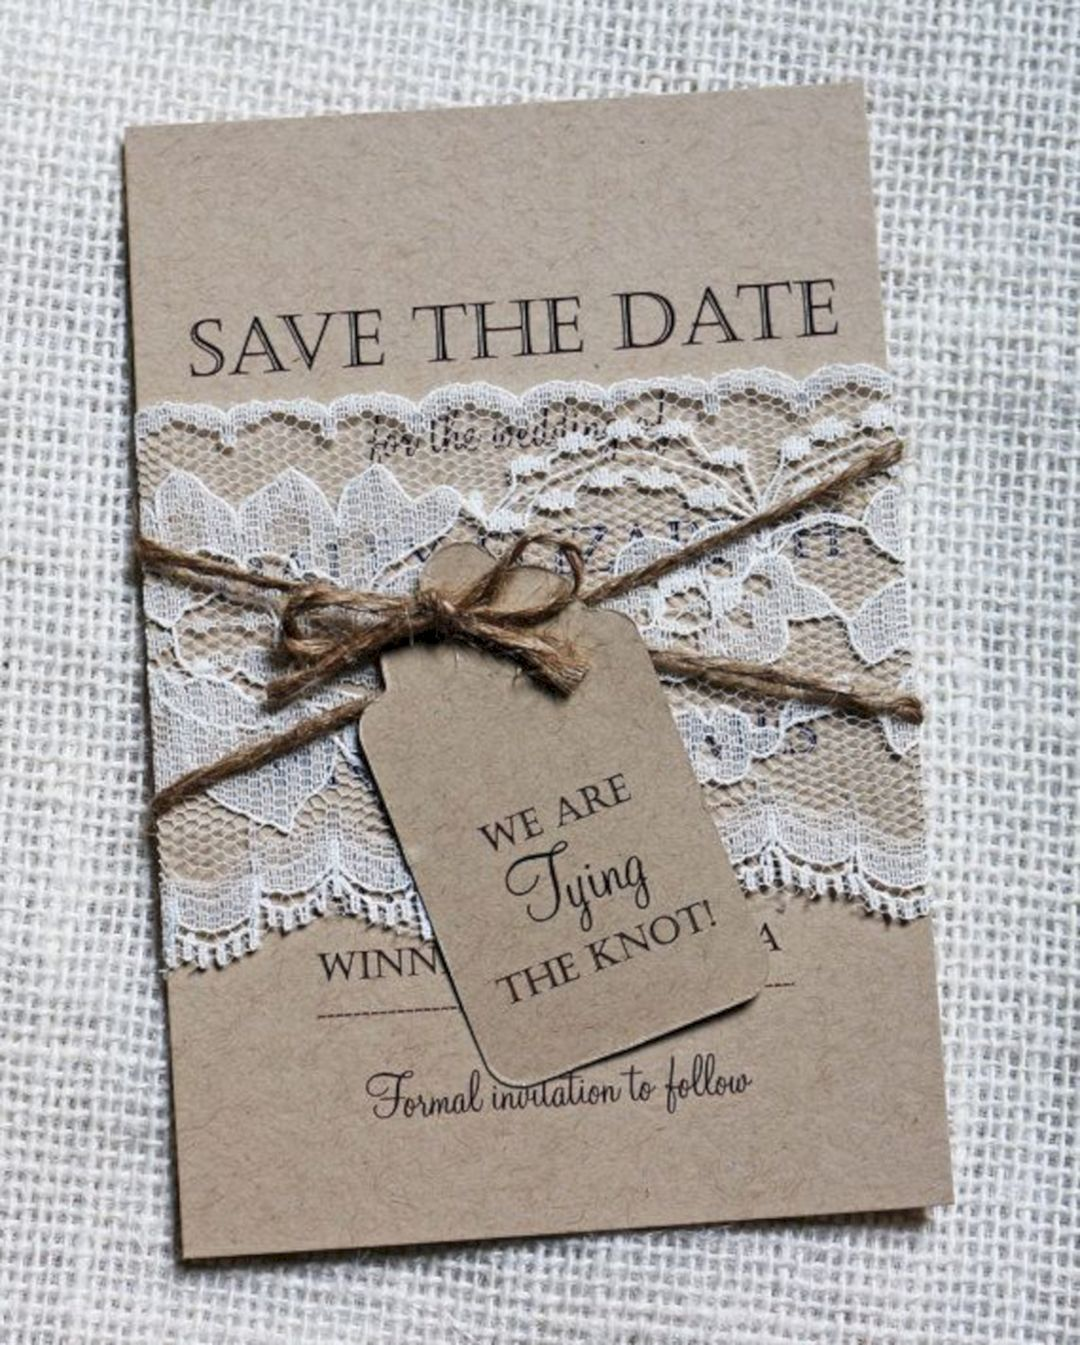 25 Unique Wedding Ideas To Get Inspire: Unique 5+ Rustic Save The Date Ideas To Inspire You